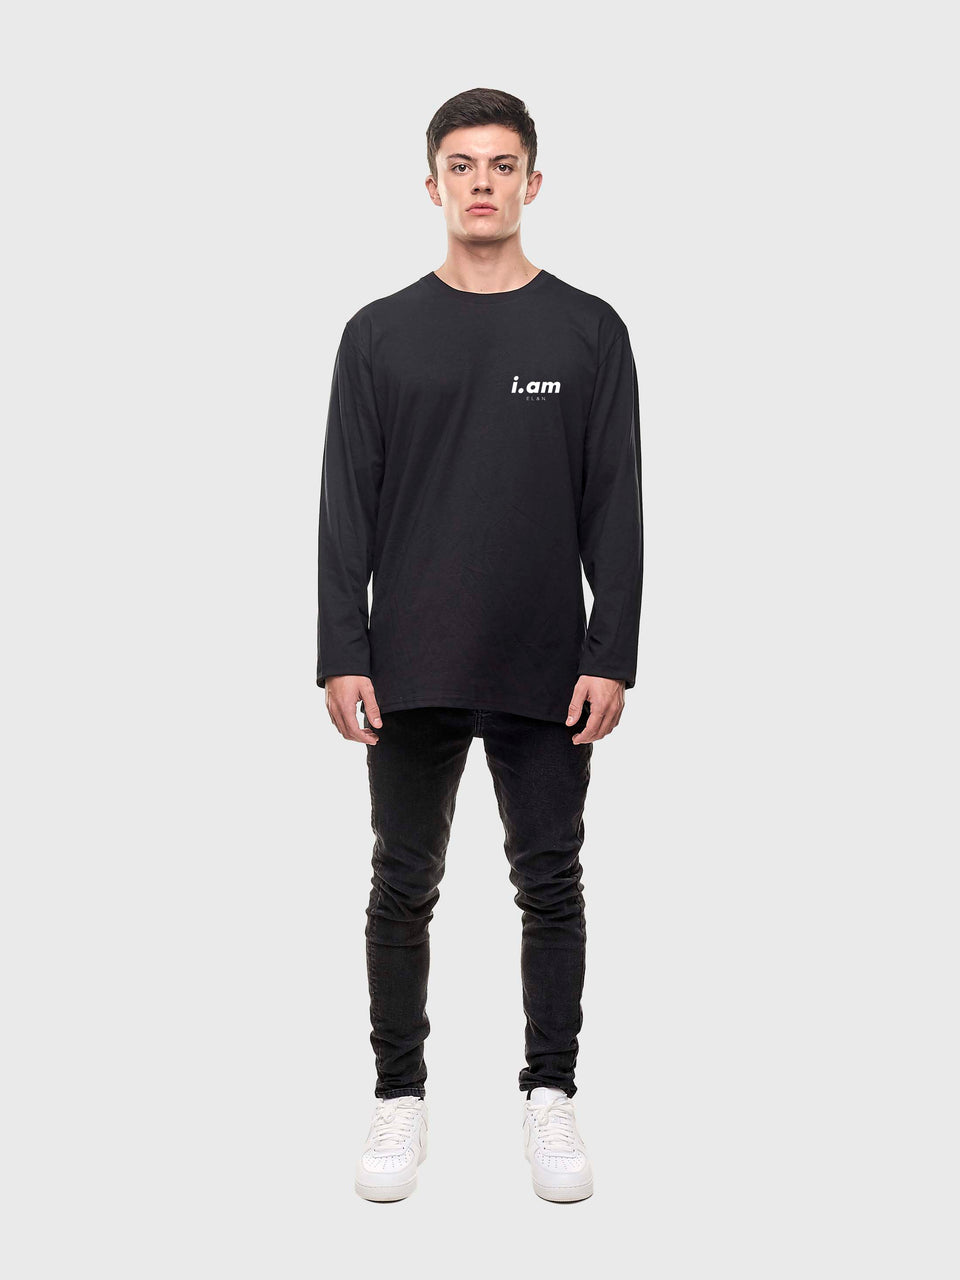 Power - Black -  Unisex long sleeve T